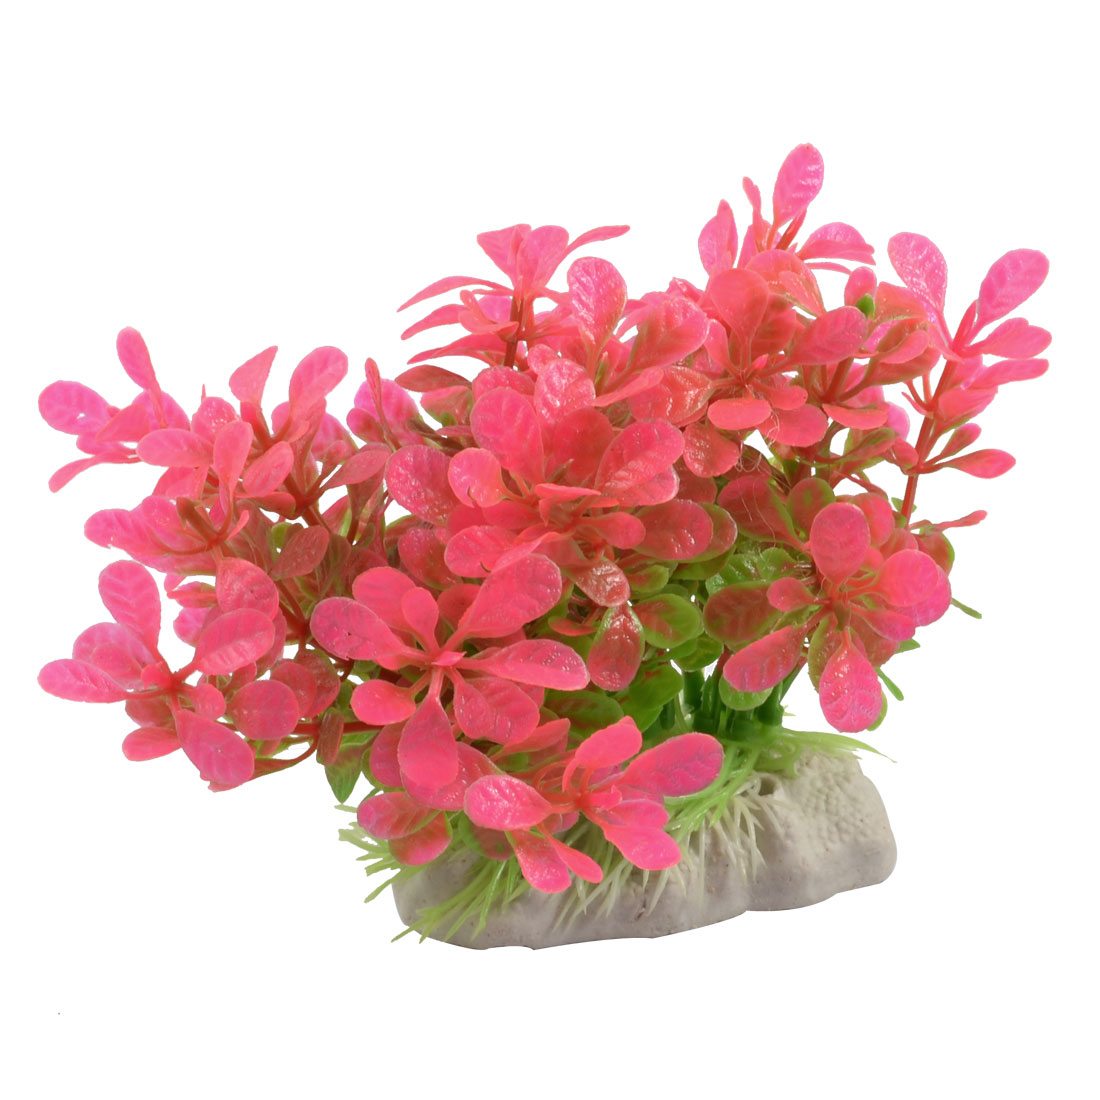 Aquarium Artificial Red Aquatic Plants Ornament for Fish Tank